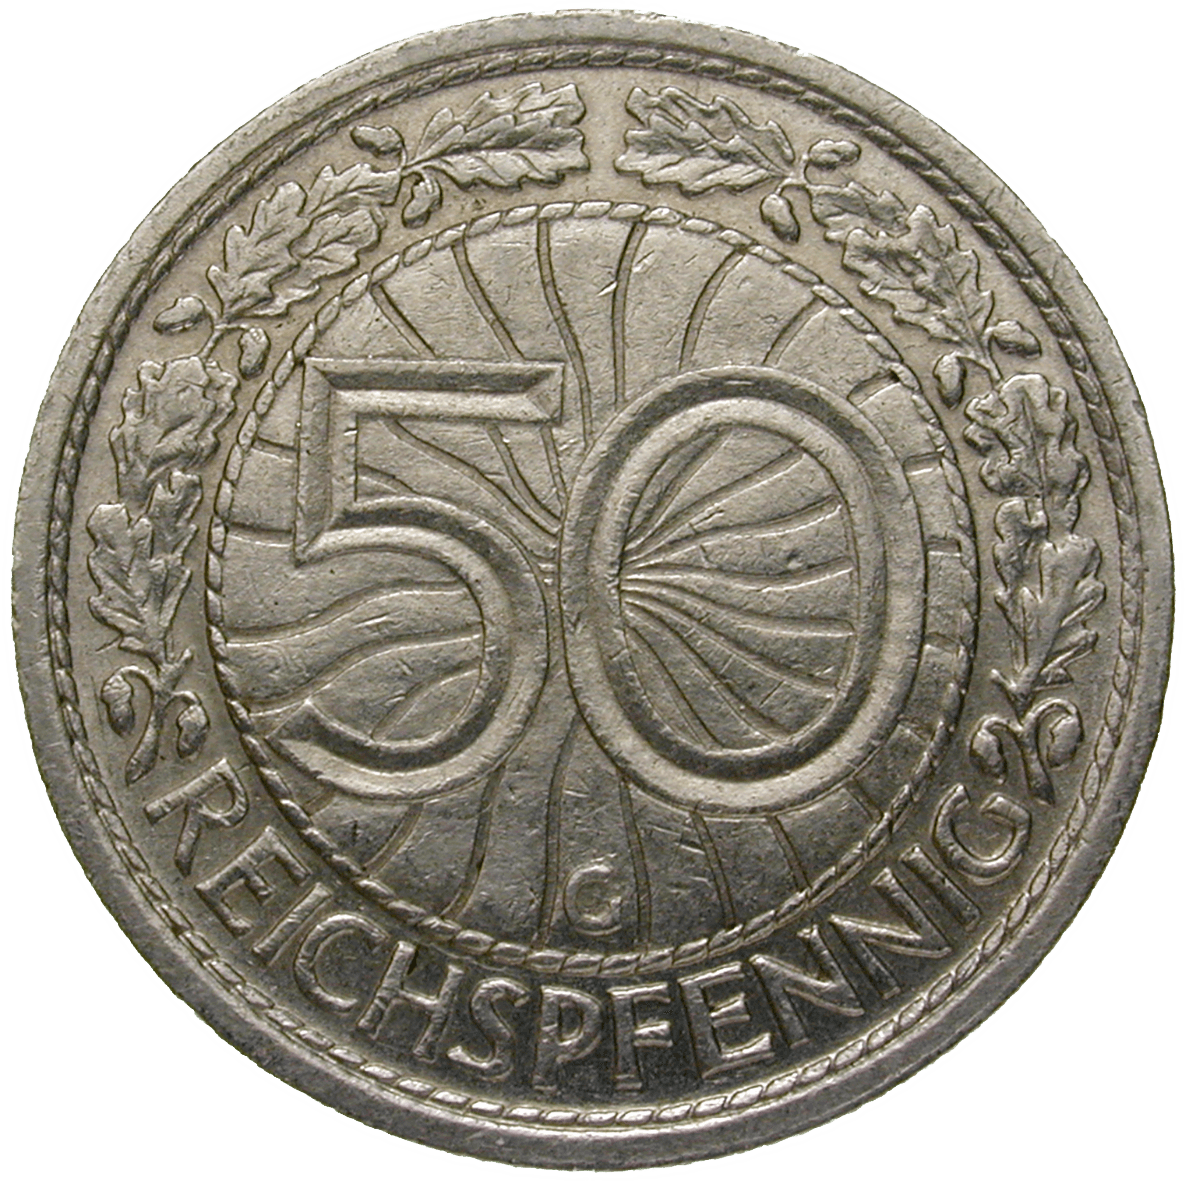 German Empire, Weimar Republic, 50 Reichspfennig 1933 (reverse)